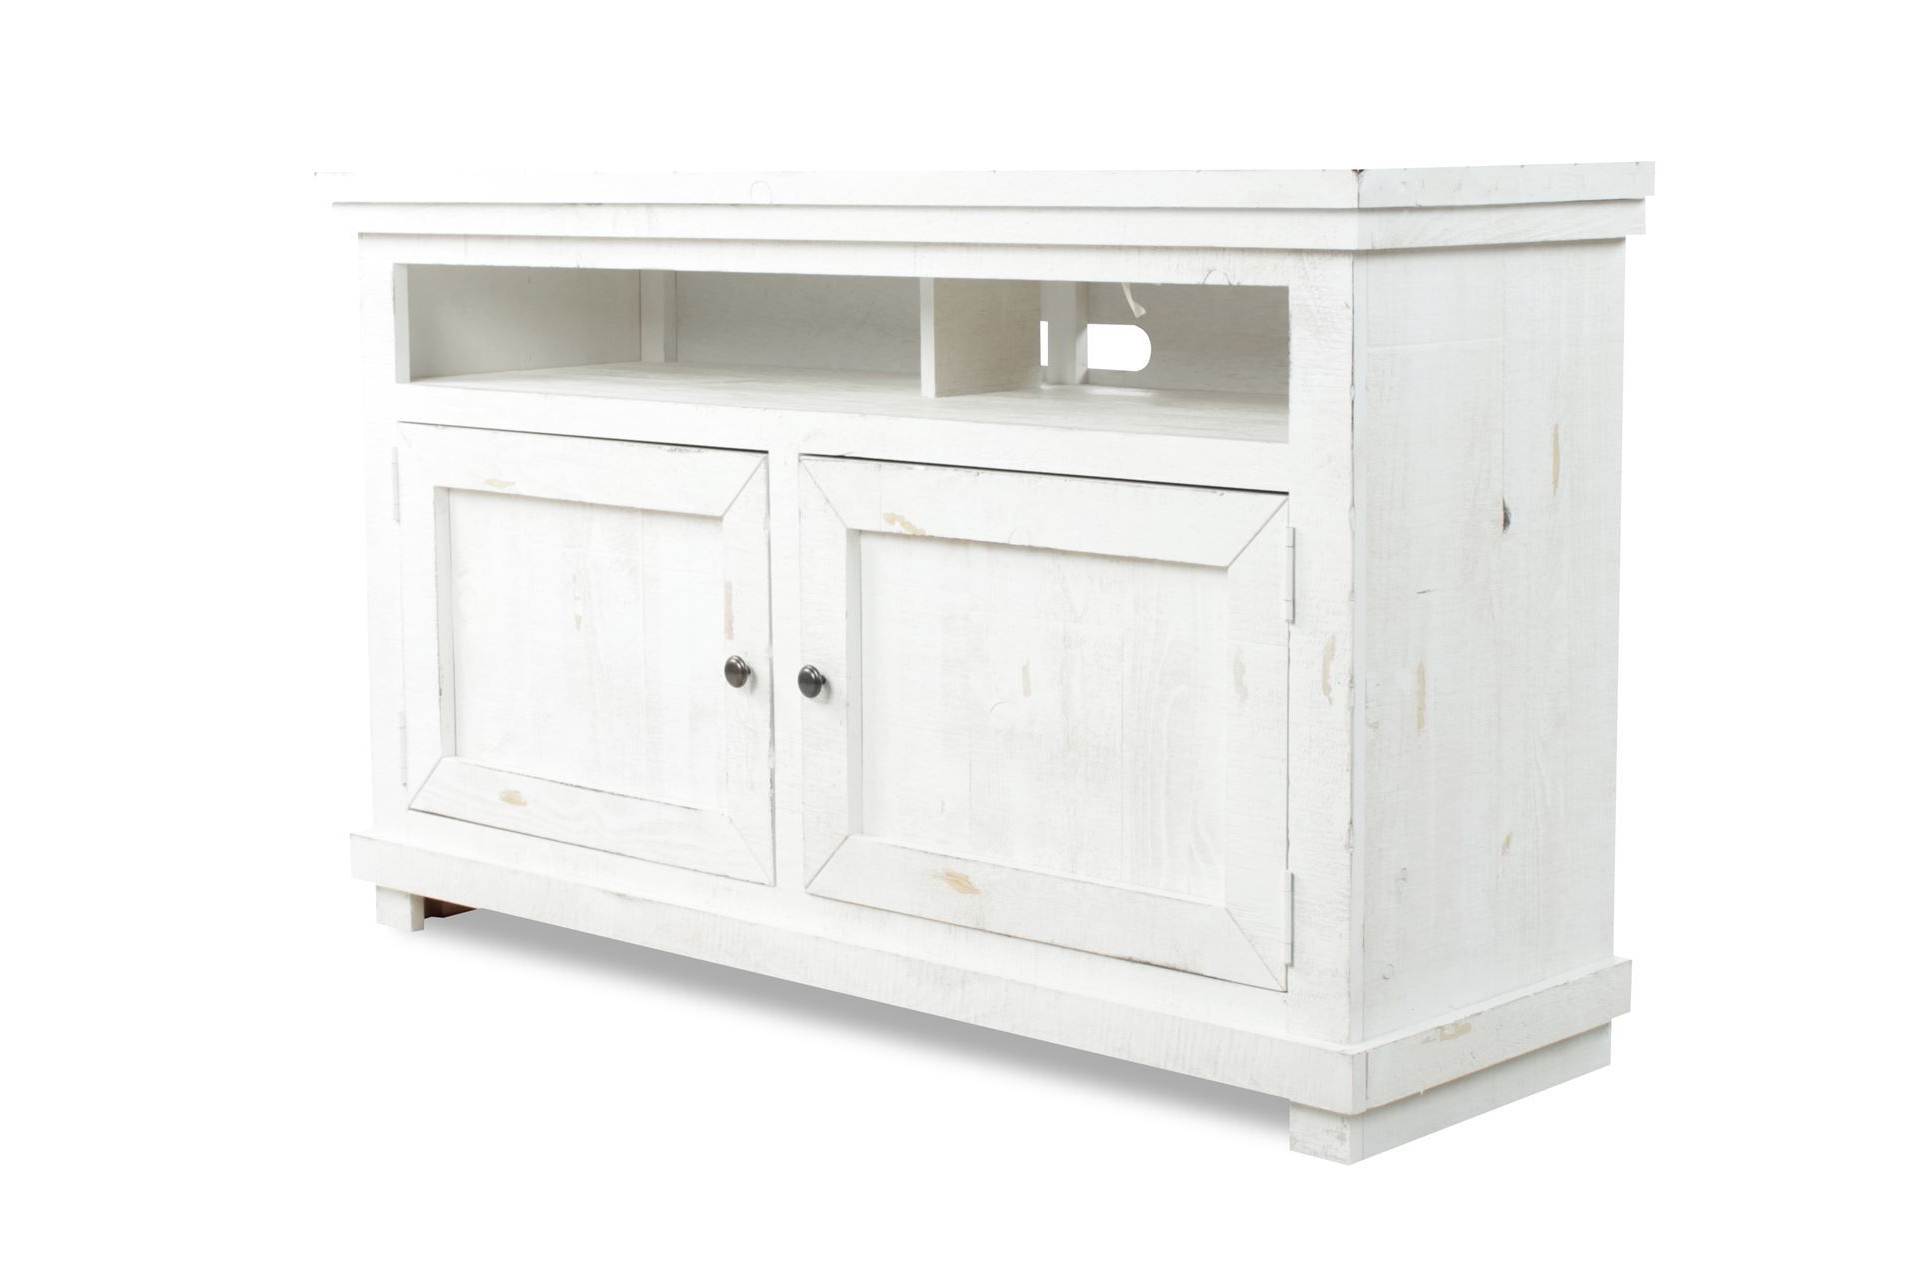 54 Inch Tv Stand, Sinclair White, Weathered White | Consoles, Tv With Regard To Ducar 84 Inch Tv Stands (View 1 of 20)